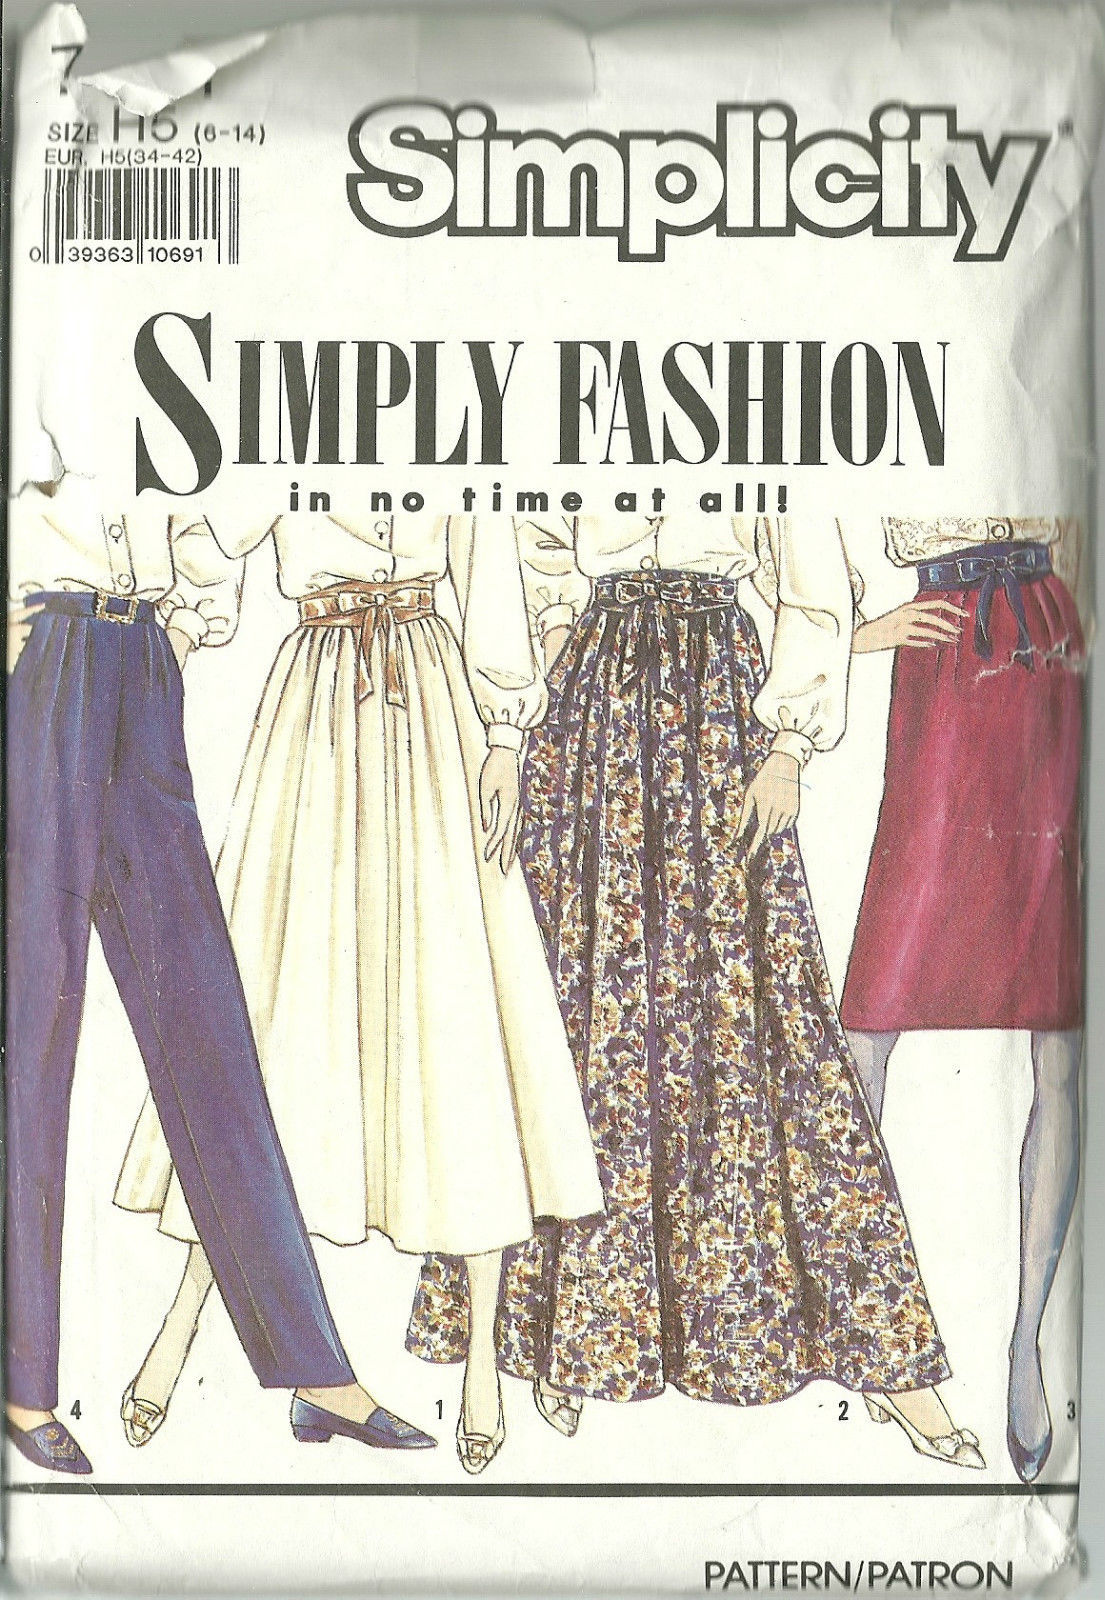 Simplicity Sewing Pattern 7021 Misses Womens Skirt Pants Sizes 6 8 10 12 Used